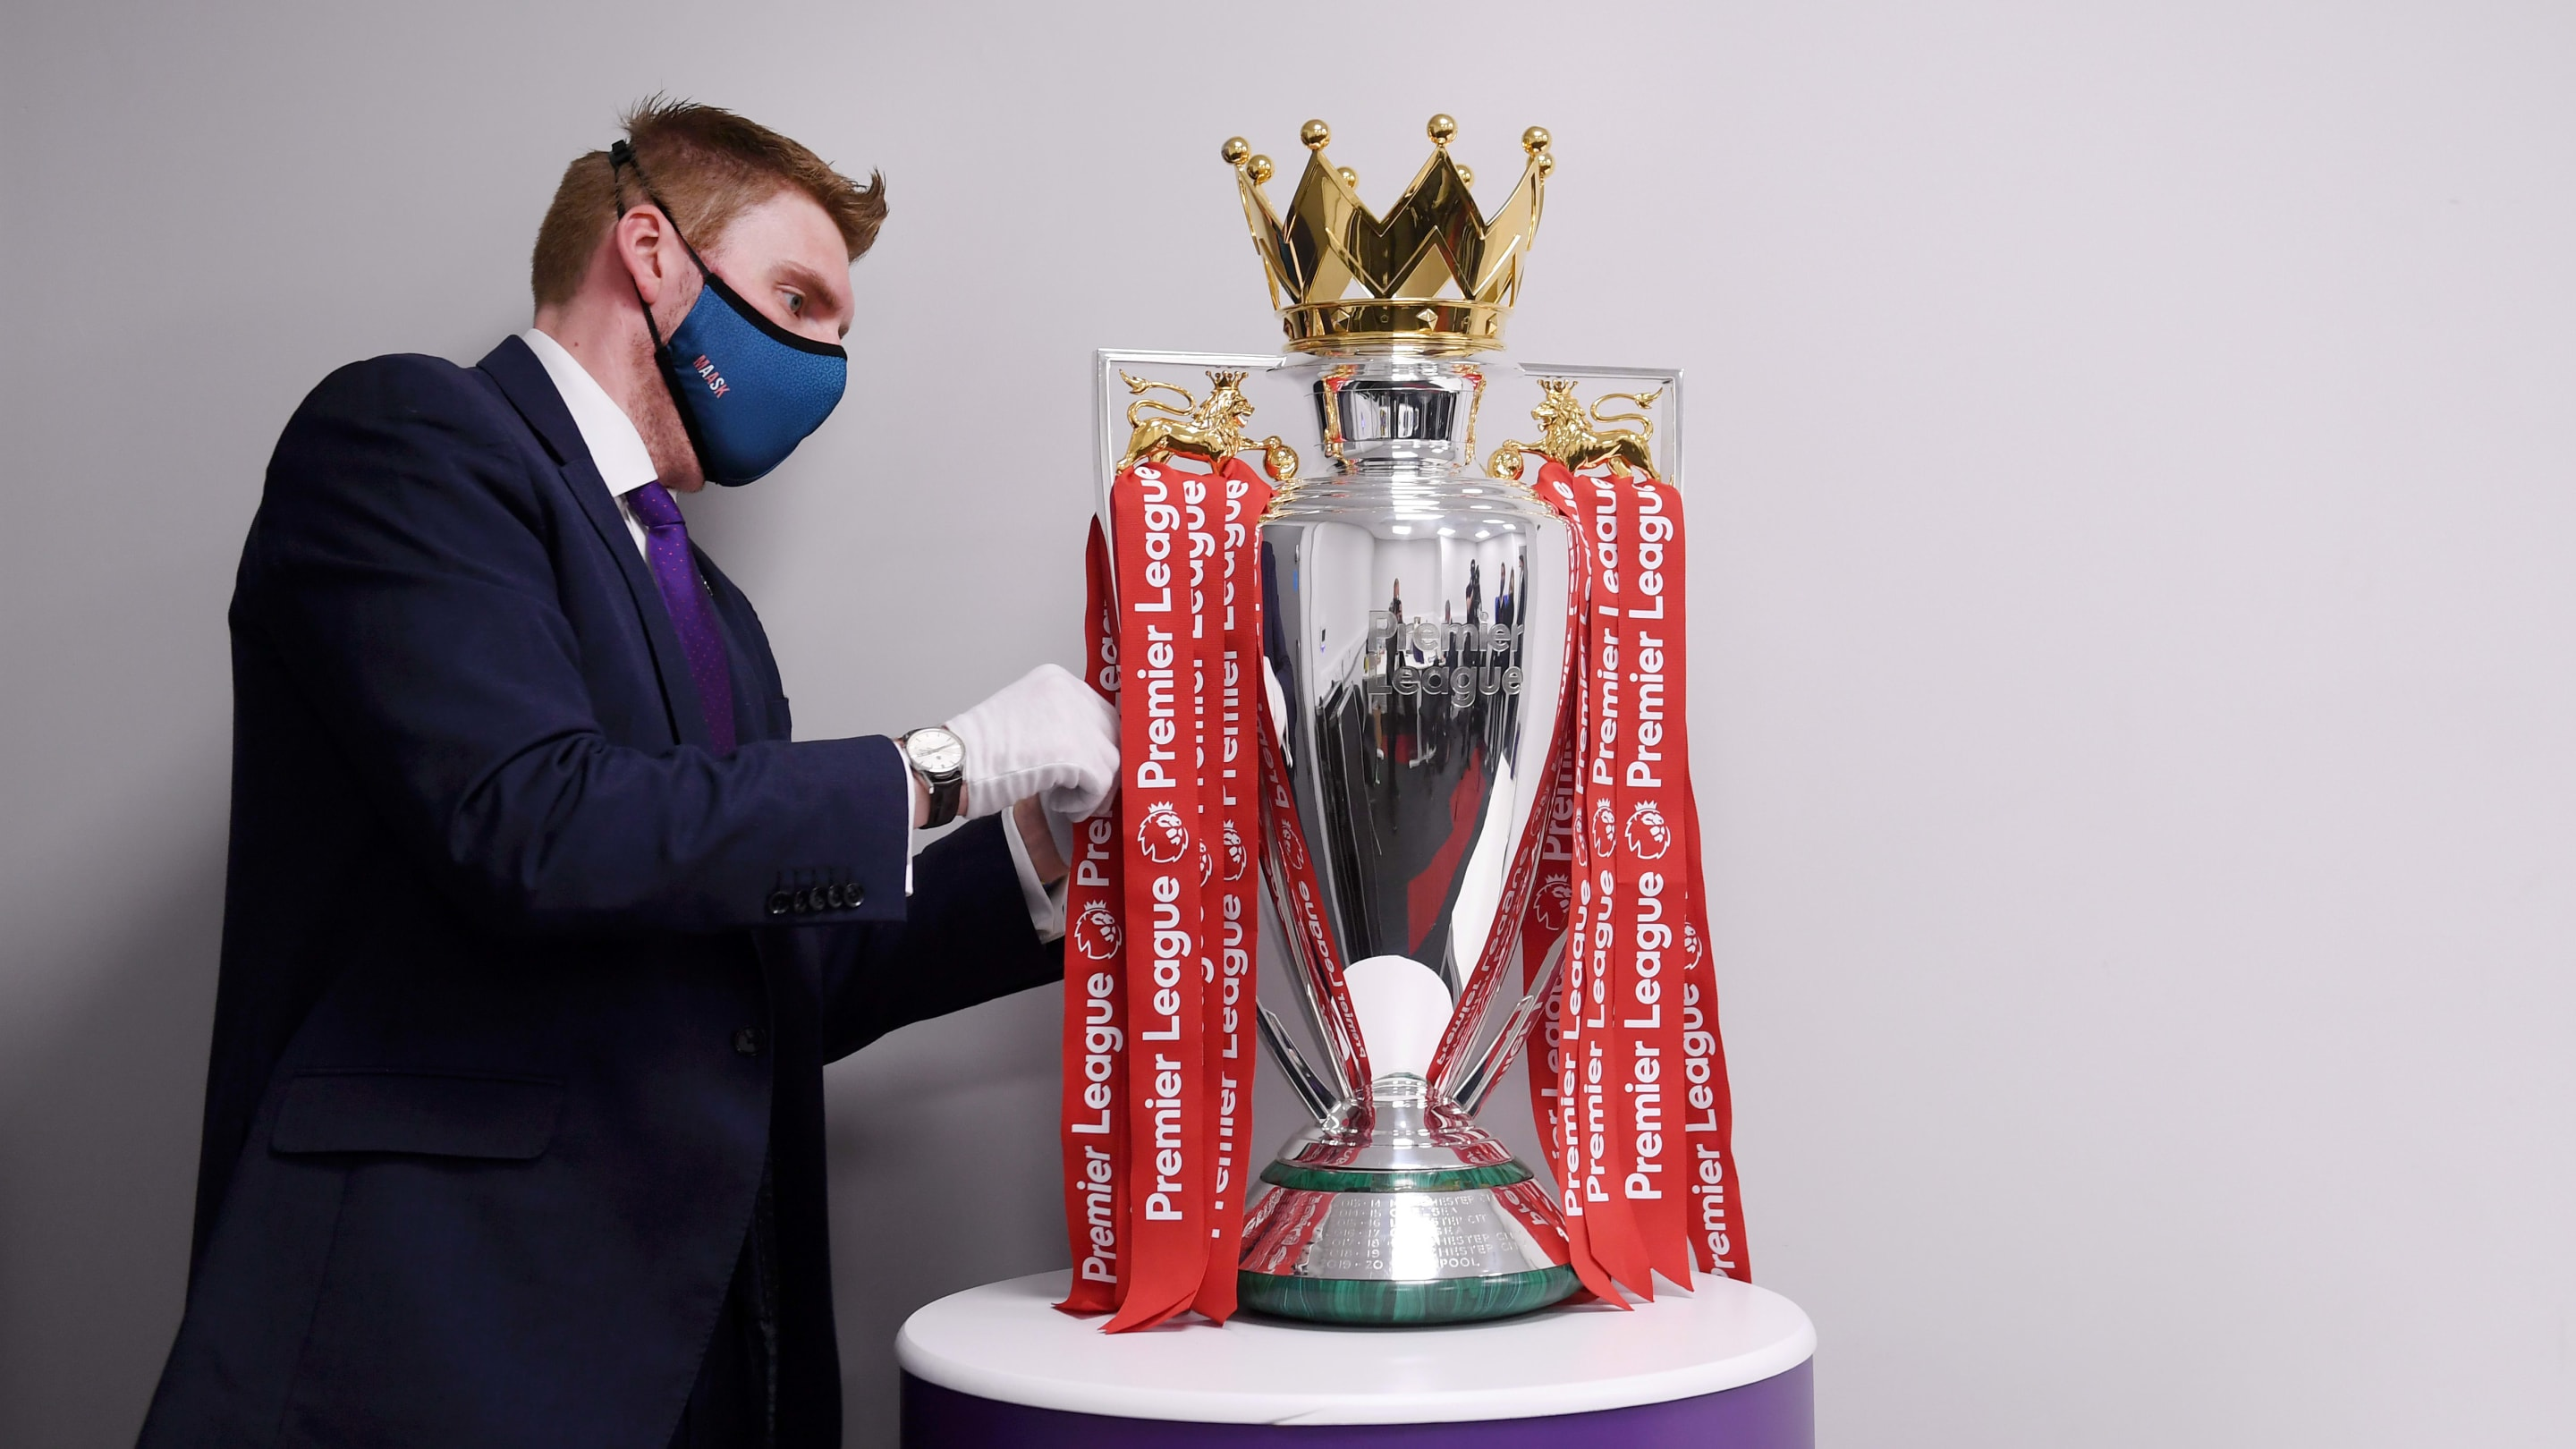 2020/21 promises to be the best Premier League title race in years